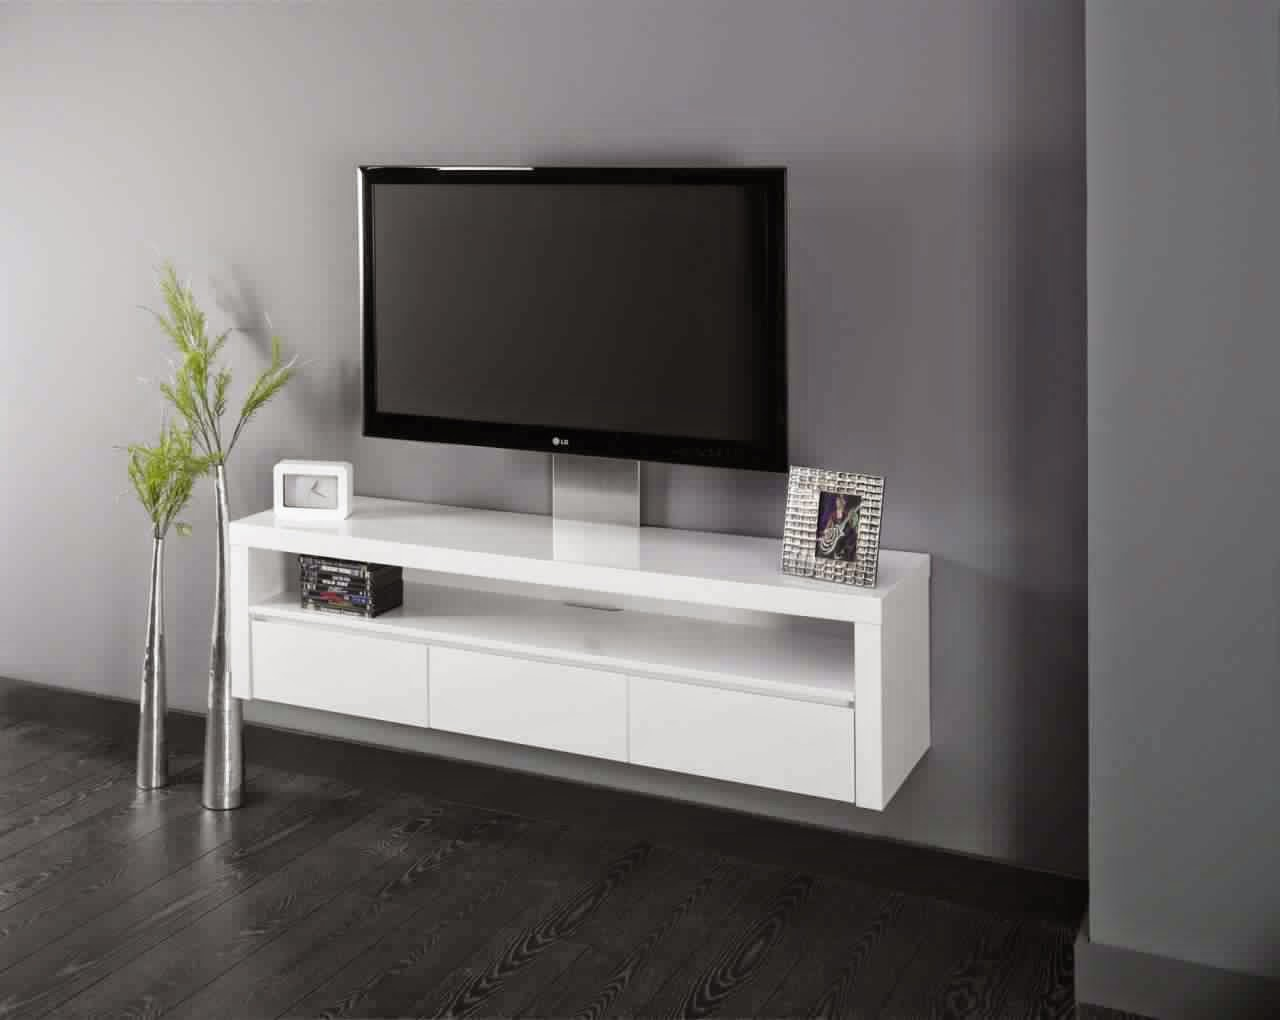 meuble tv suspendu meuble d coration maison. Black Bedroom Furniture Sets. Home Design Ideas